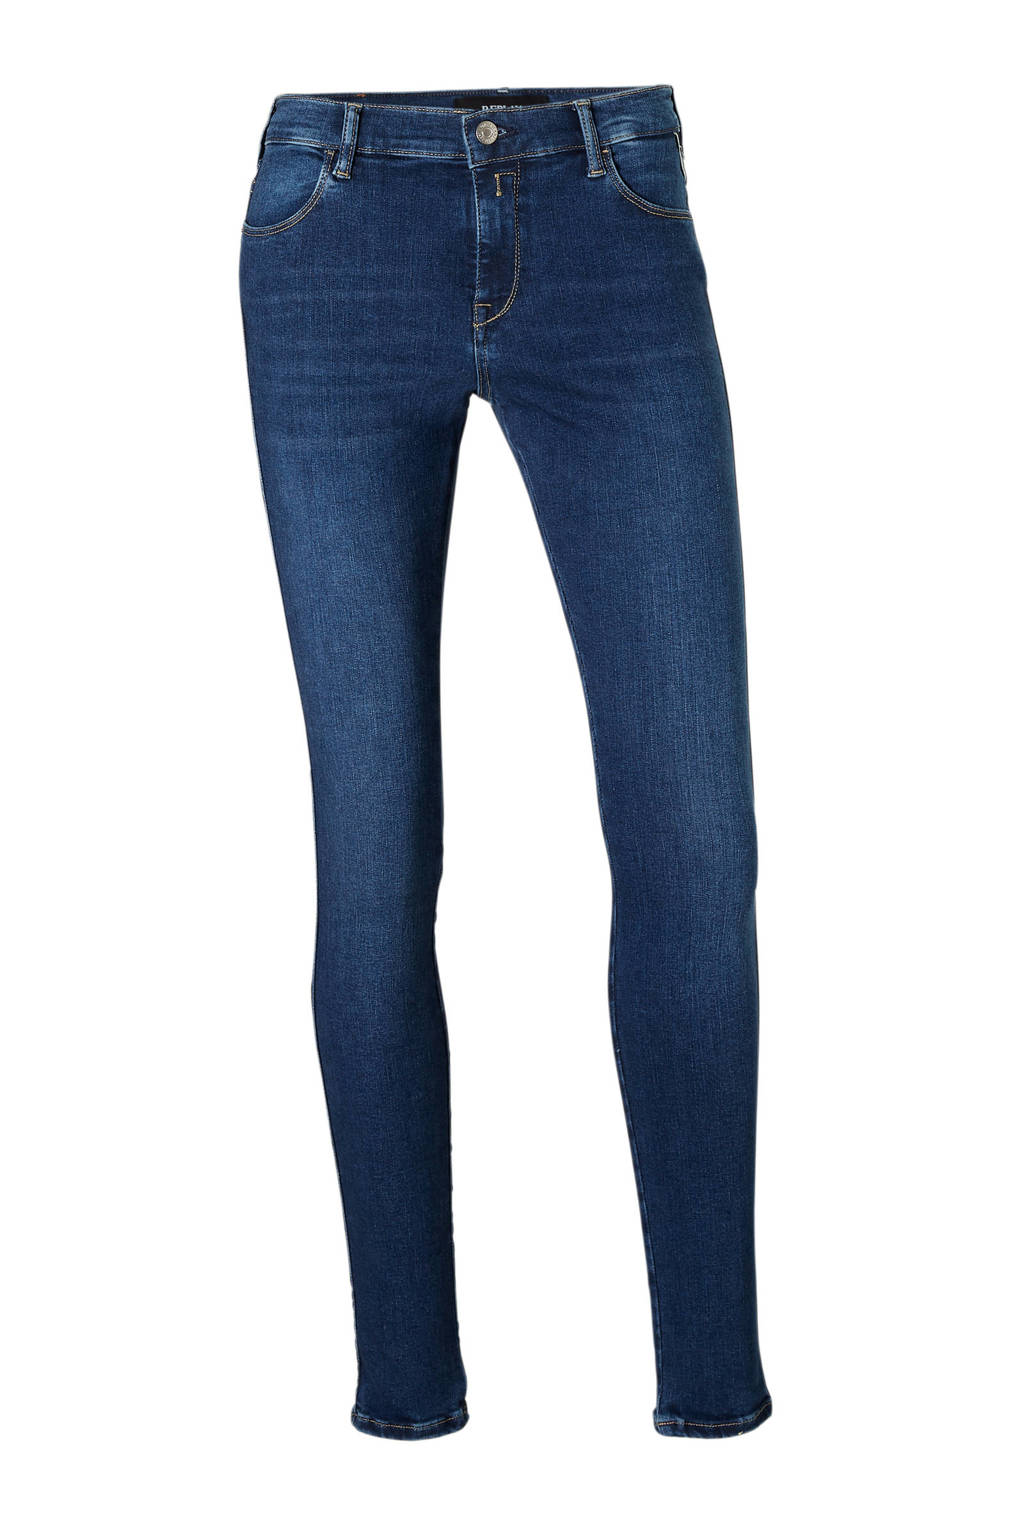 REPLAY high waist skinny fit jeans, Blauw